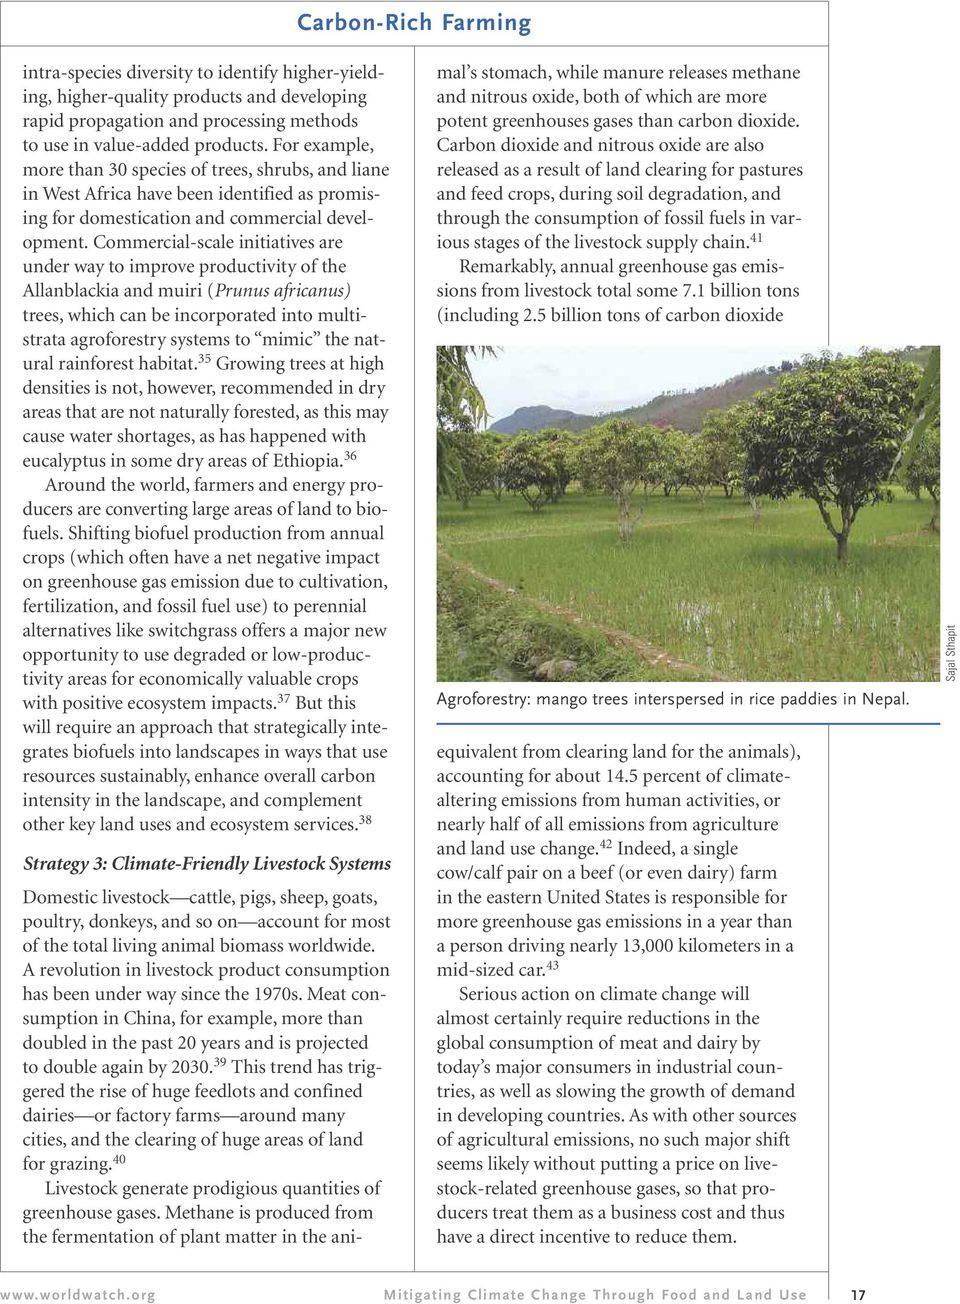 Commercial-scale initiatives are under way to improve productivity of the Allanblackia and muiri (Prunus africanus) trees, which can be incorporated into multistrata agroforestry systems to mimic the